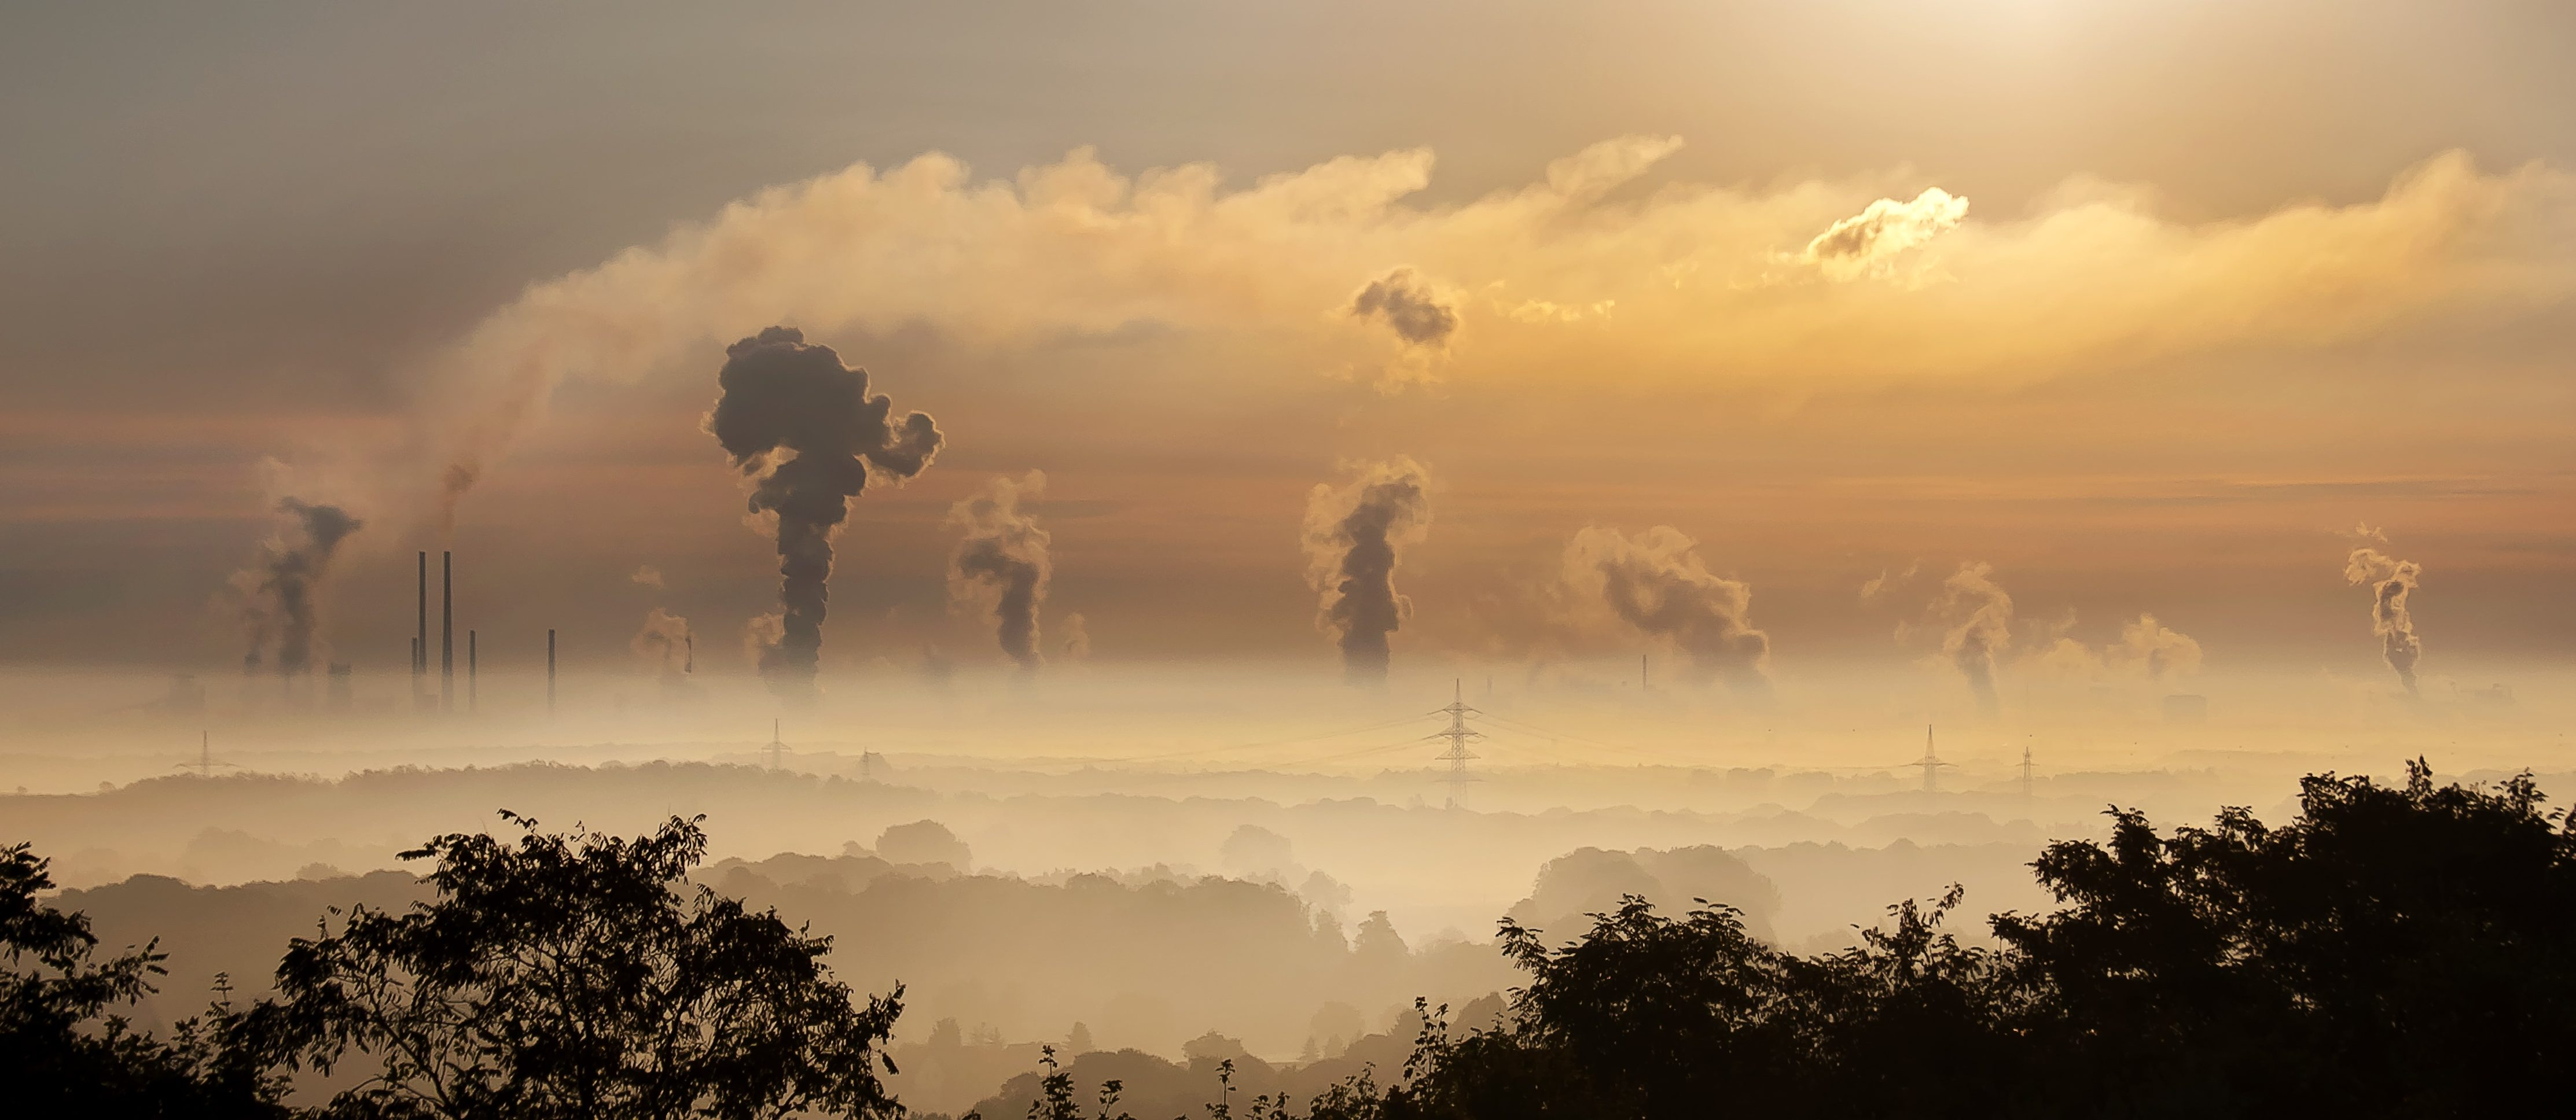 The dirty problem of air pollution in Asia - pexels